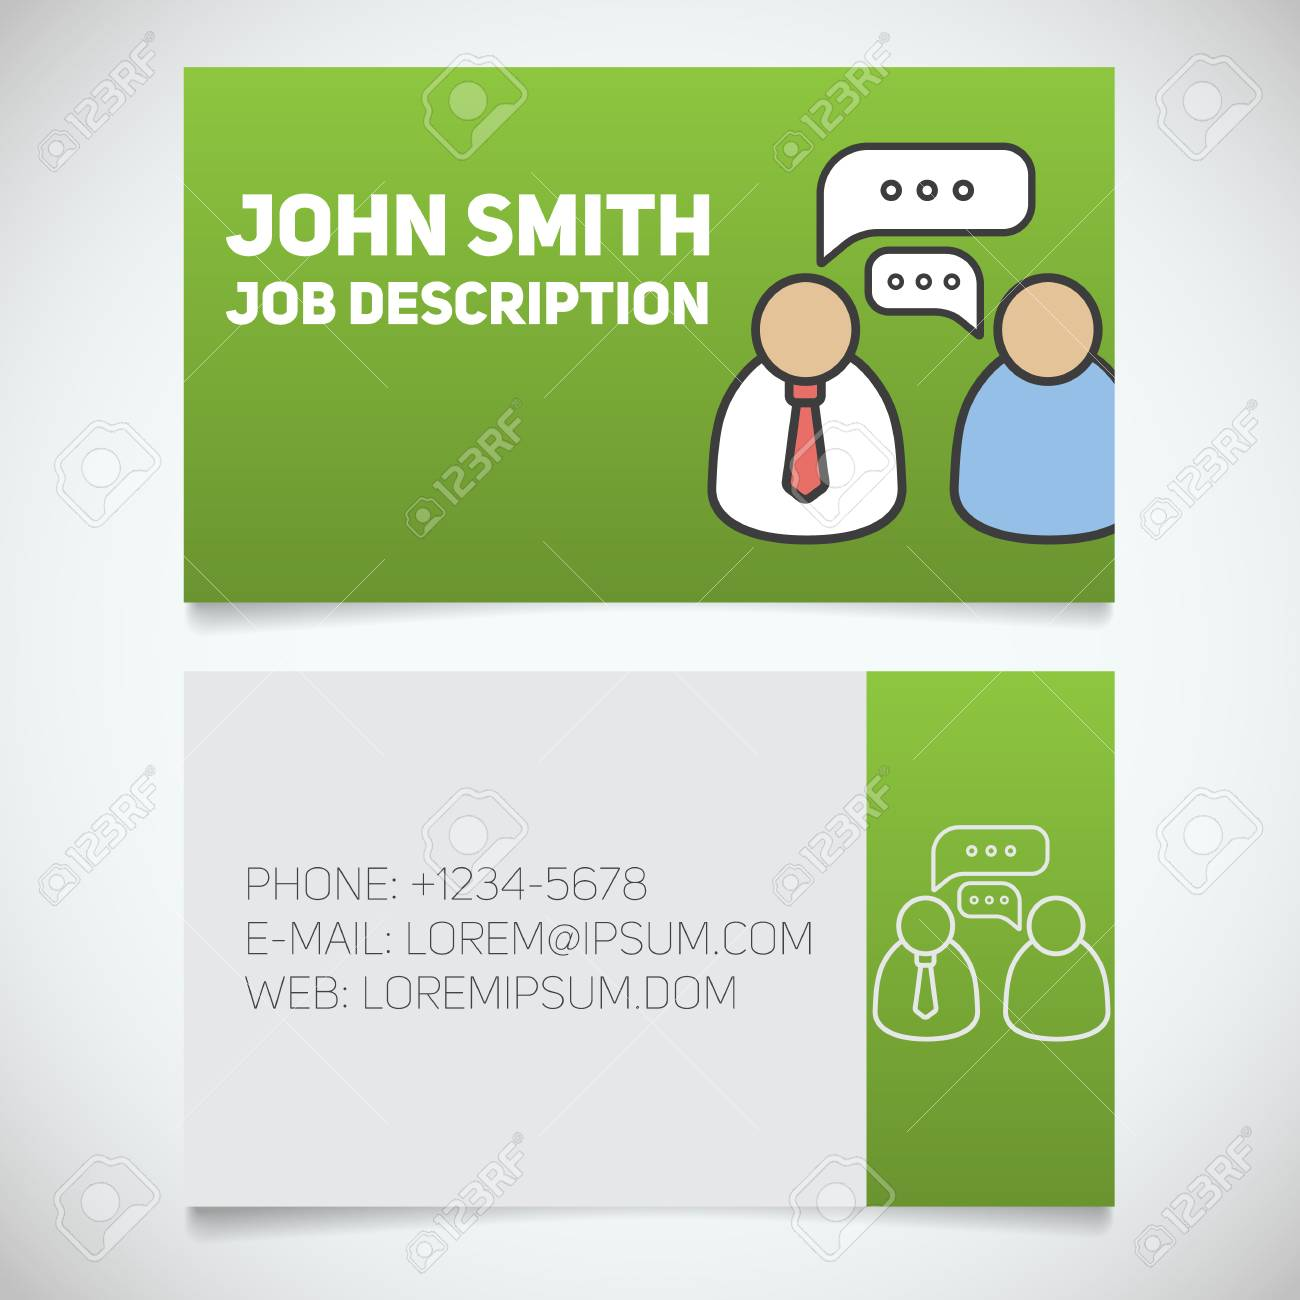 Business card print template with interview logo easy edit business card print template with interview logo easy edit manager journalist reporter colourmoves